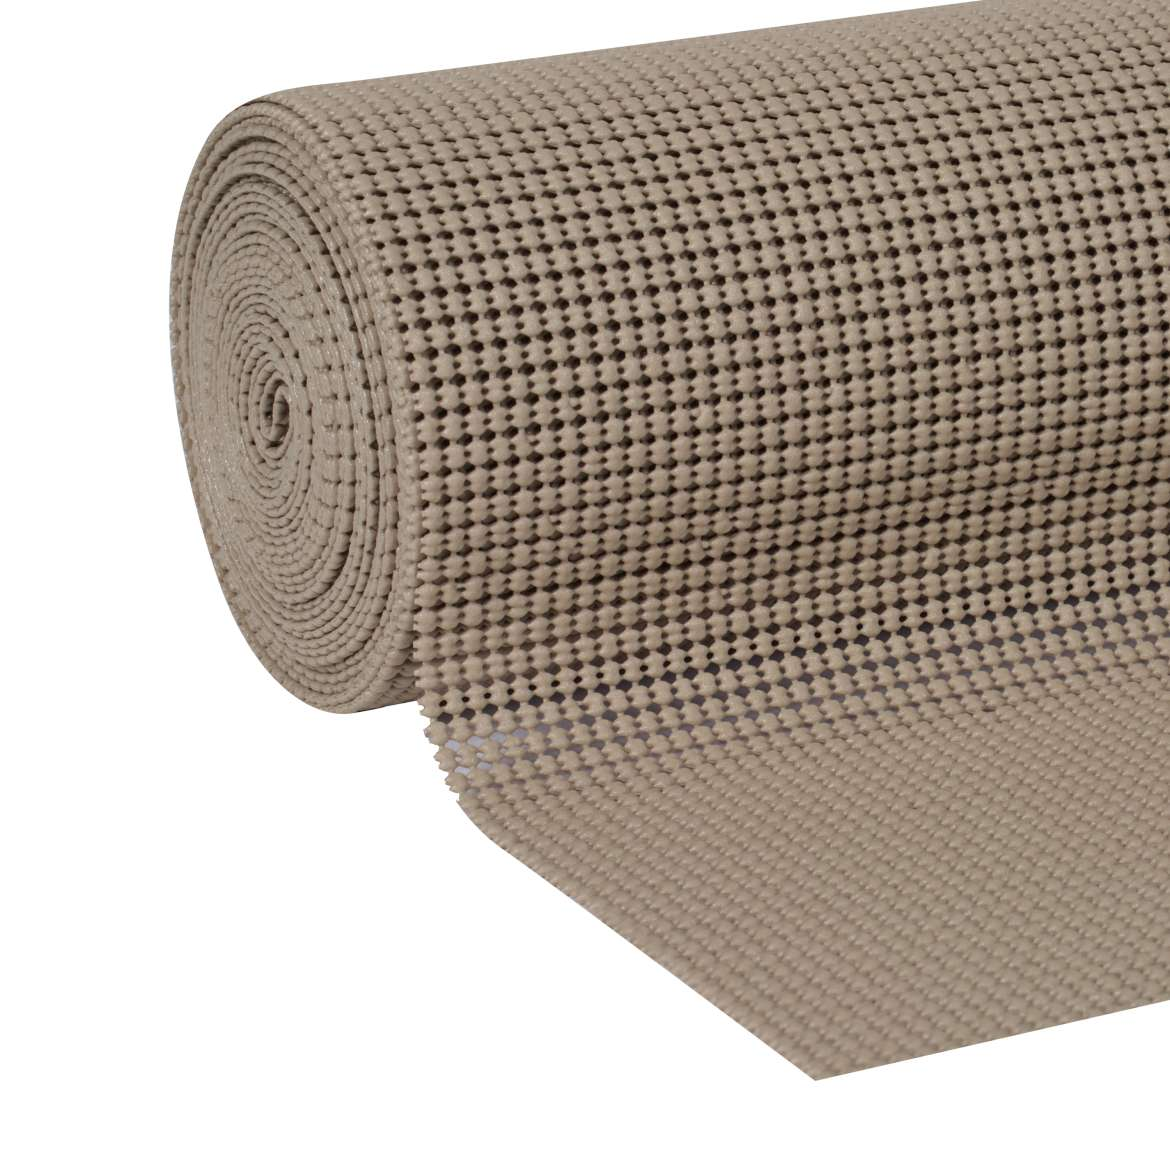 Duck Brand Select Grip Easy Liner Brand Shelf Liner - Brownstone, 20 in. x 24 ft.